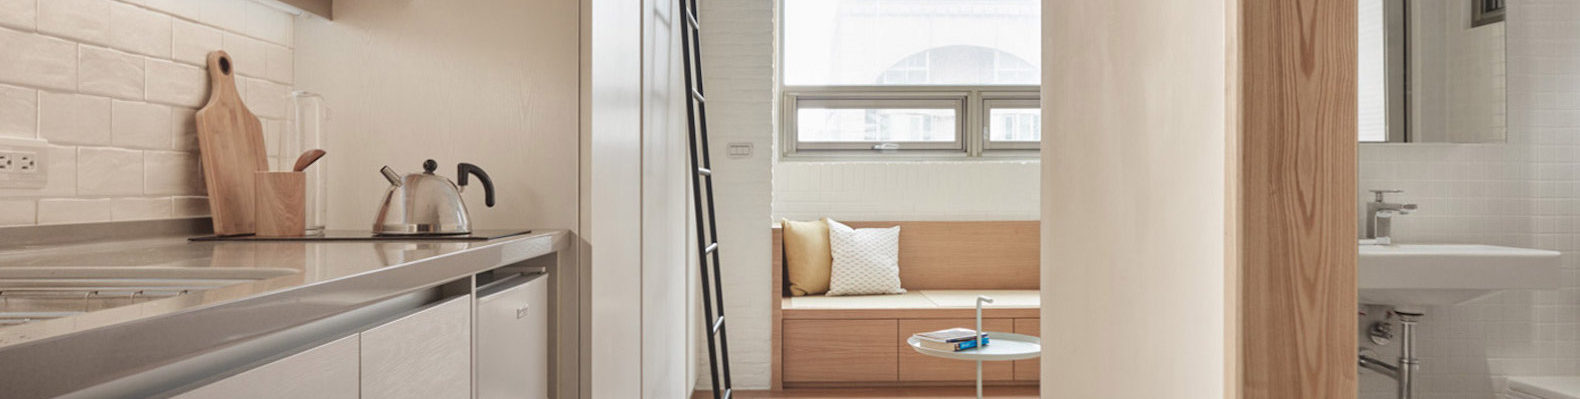 Smart Space Saving Design Transforms A Tiny Apartment In Taipei Into An  Upscale Home | Inhabitat   Green Design, Innovation, Architecture, Green  Building